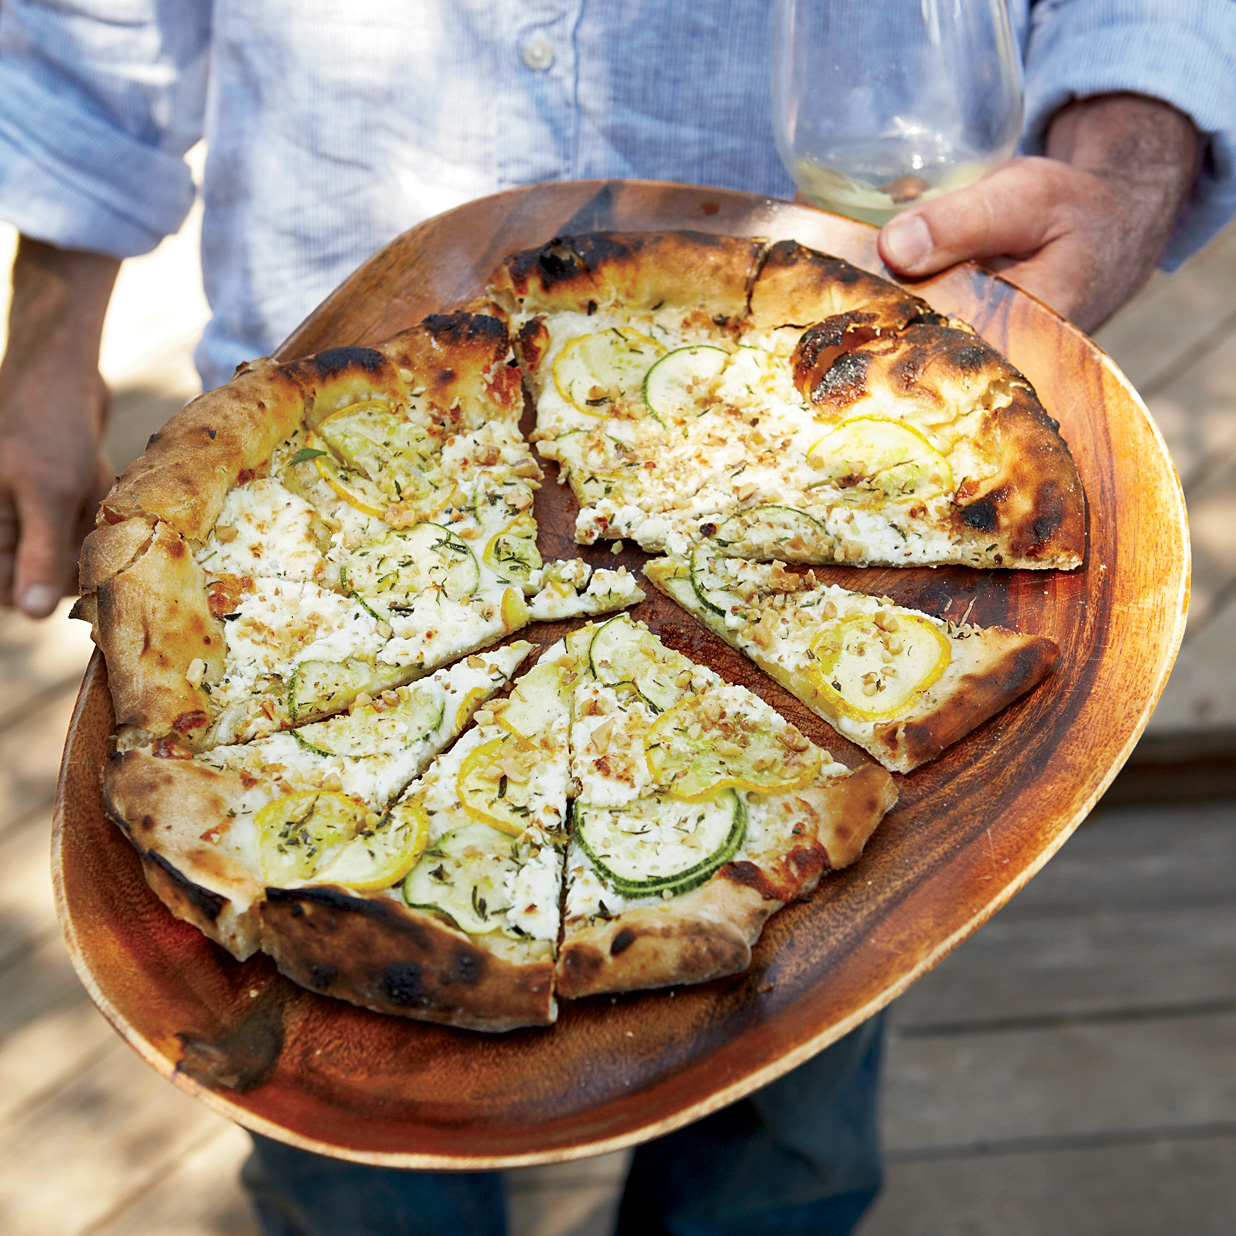 Homemade Pizza Recipes: Summer Squash Pizza with Goat Cheese and Walnuts